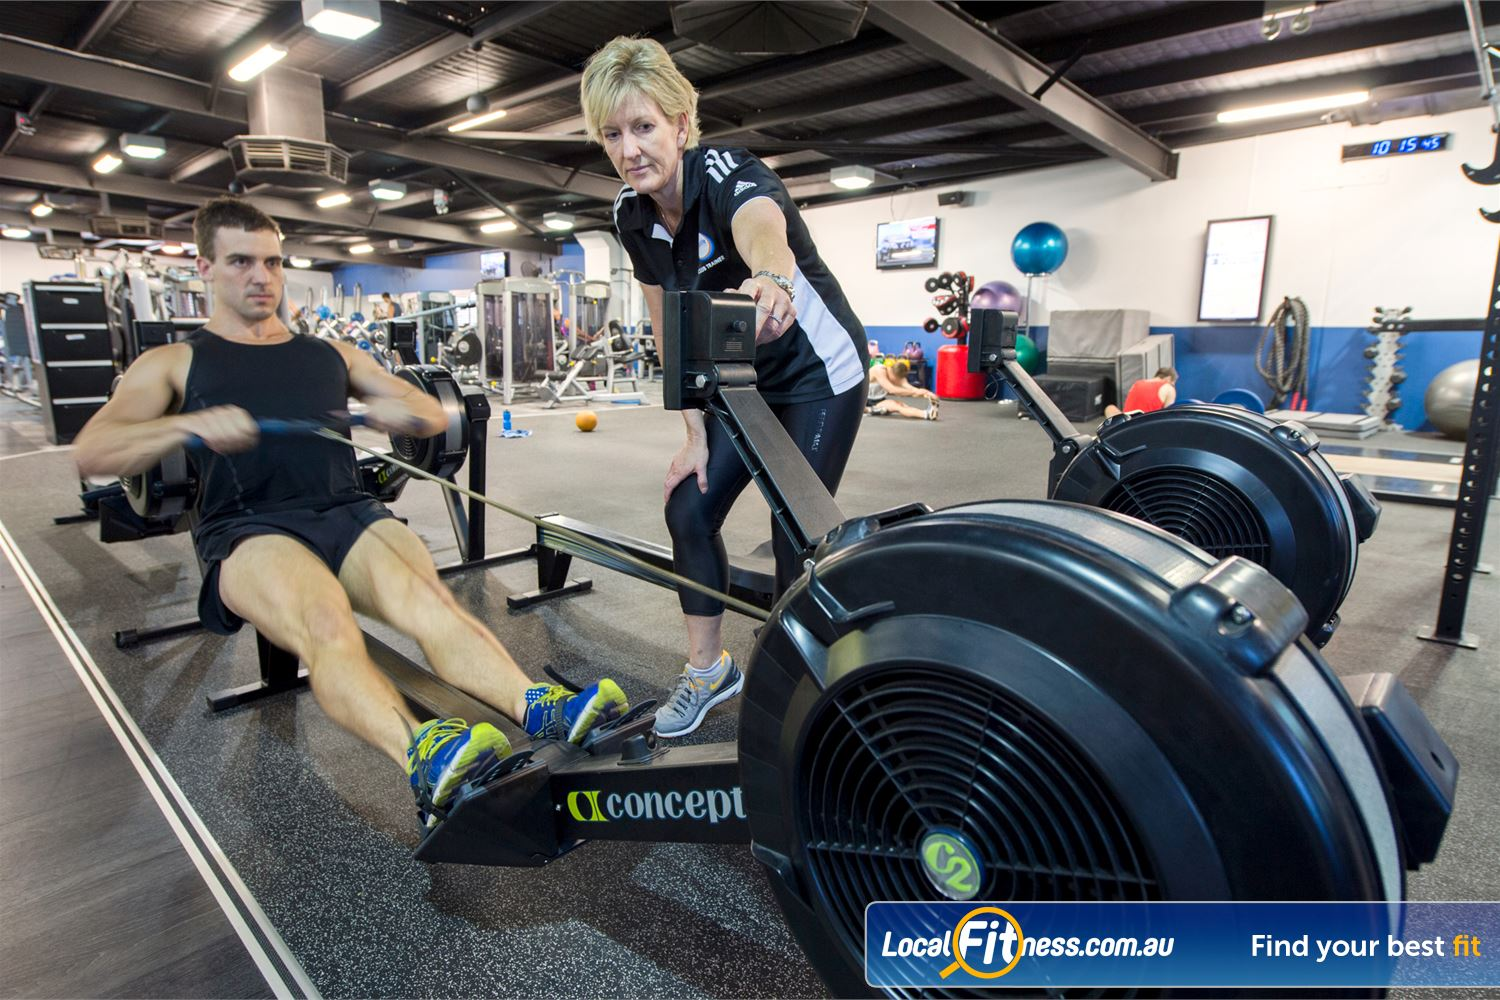 Goodlife Health Clubs Mount Lawley Our Mount Lawley gym team can help vary your cardio and include indoor rowing.